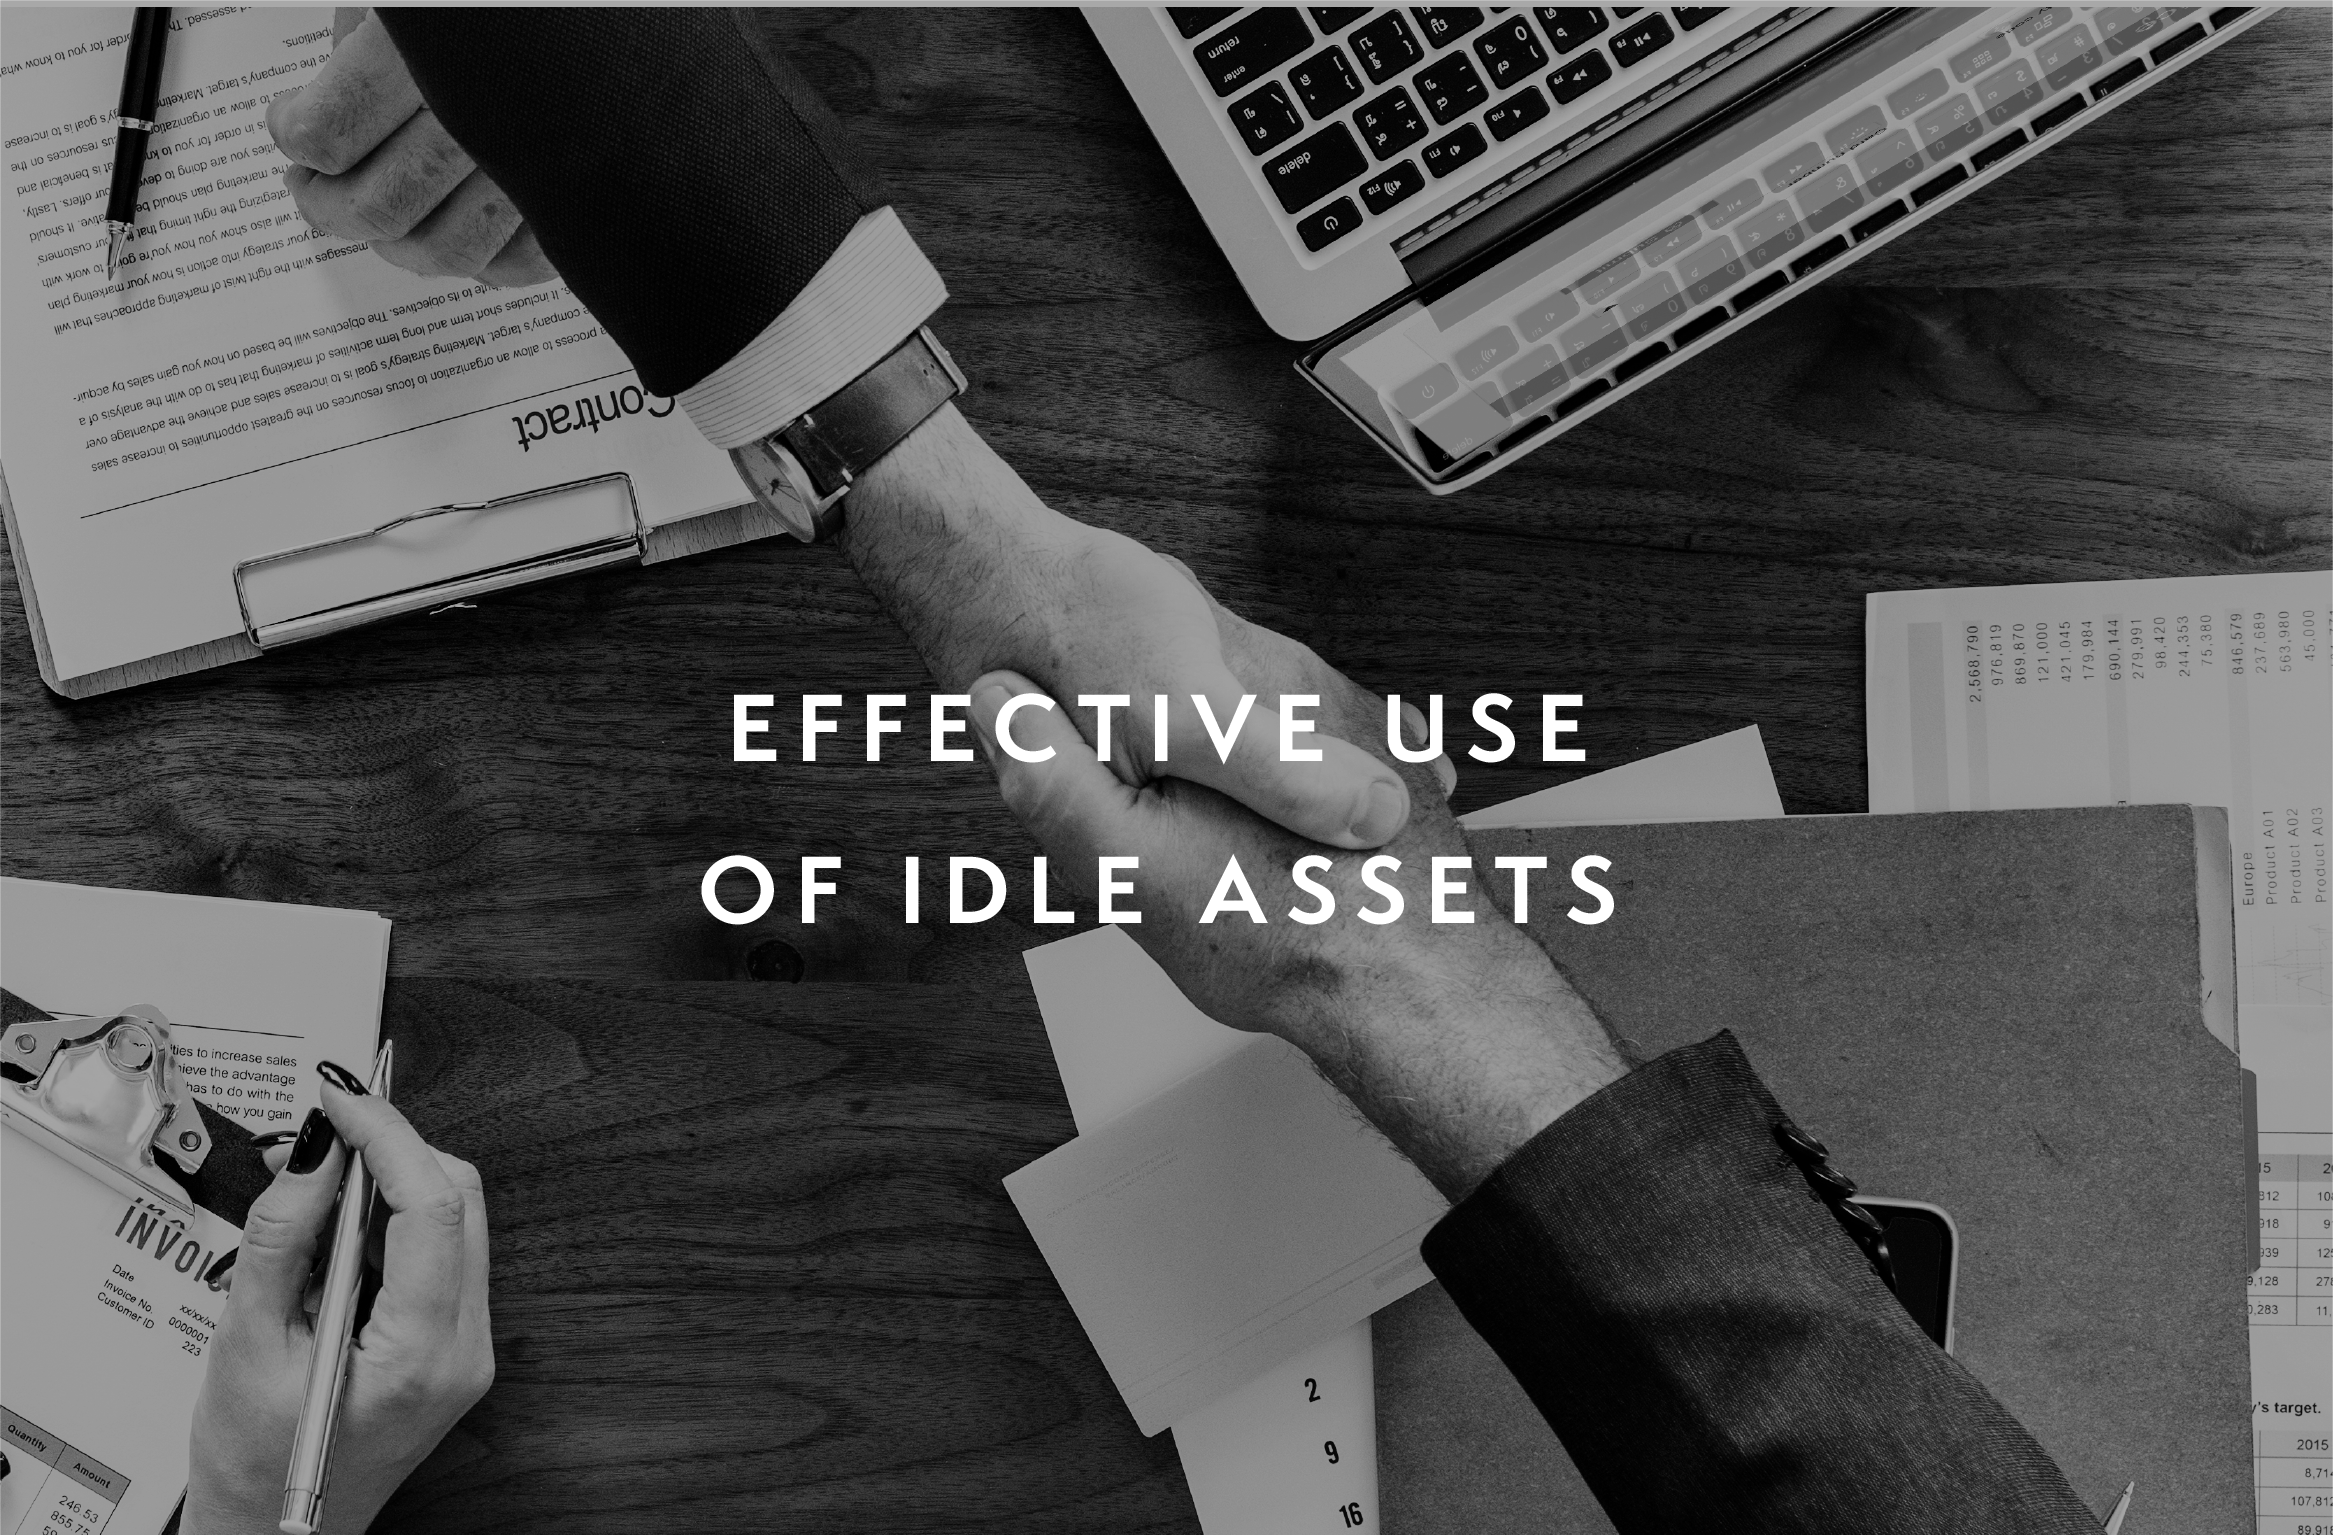 Effective use of idle assets